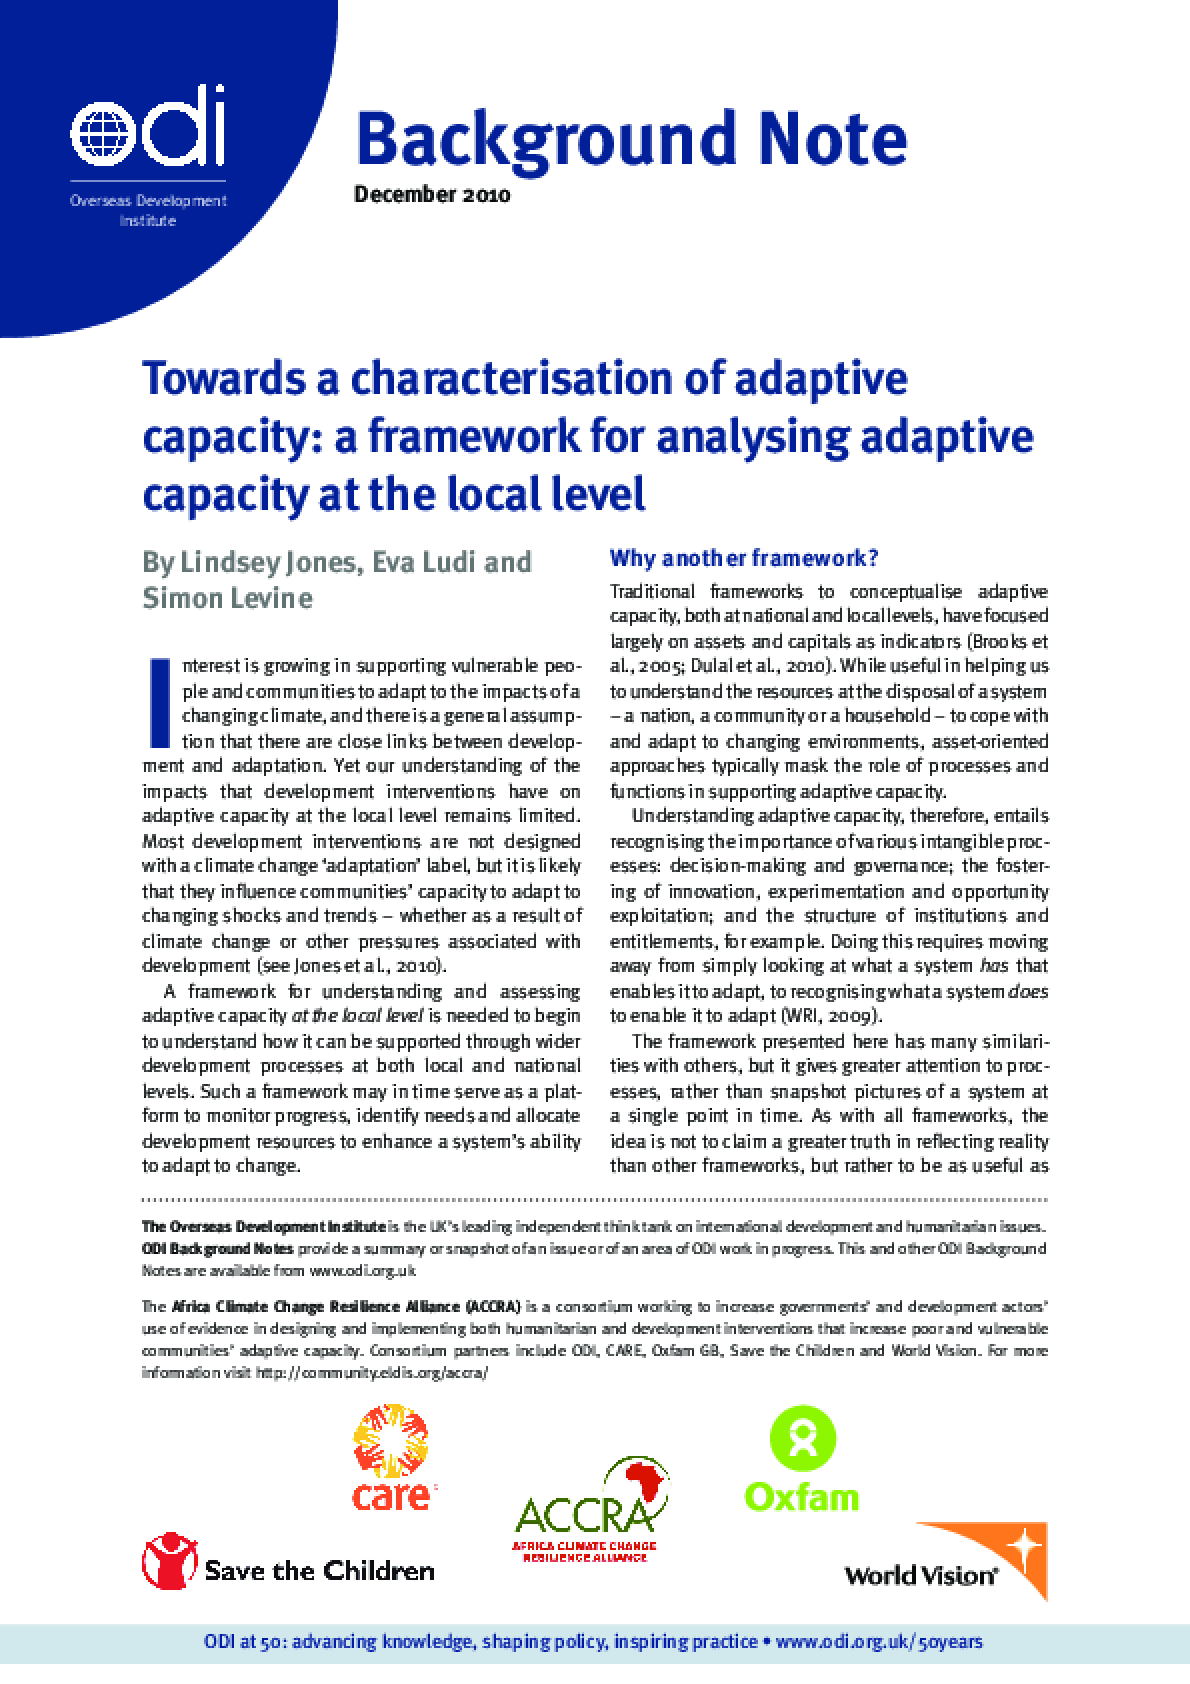 Towards a characterisation of adaptive capacity: A framework for analysing adaptive capacity at the local level